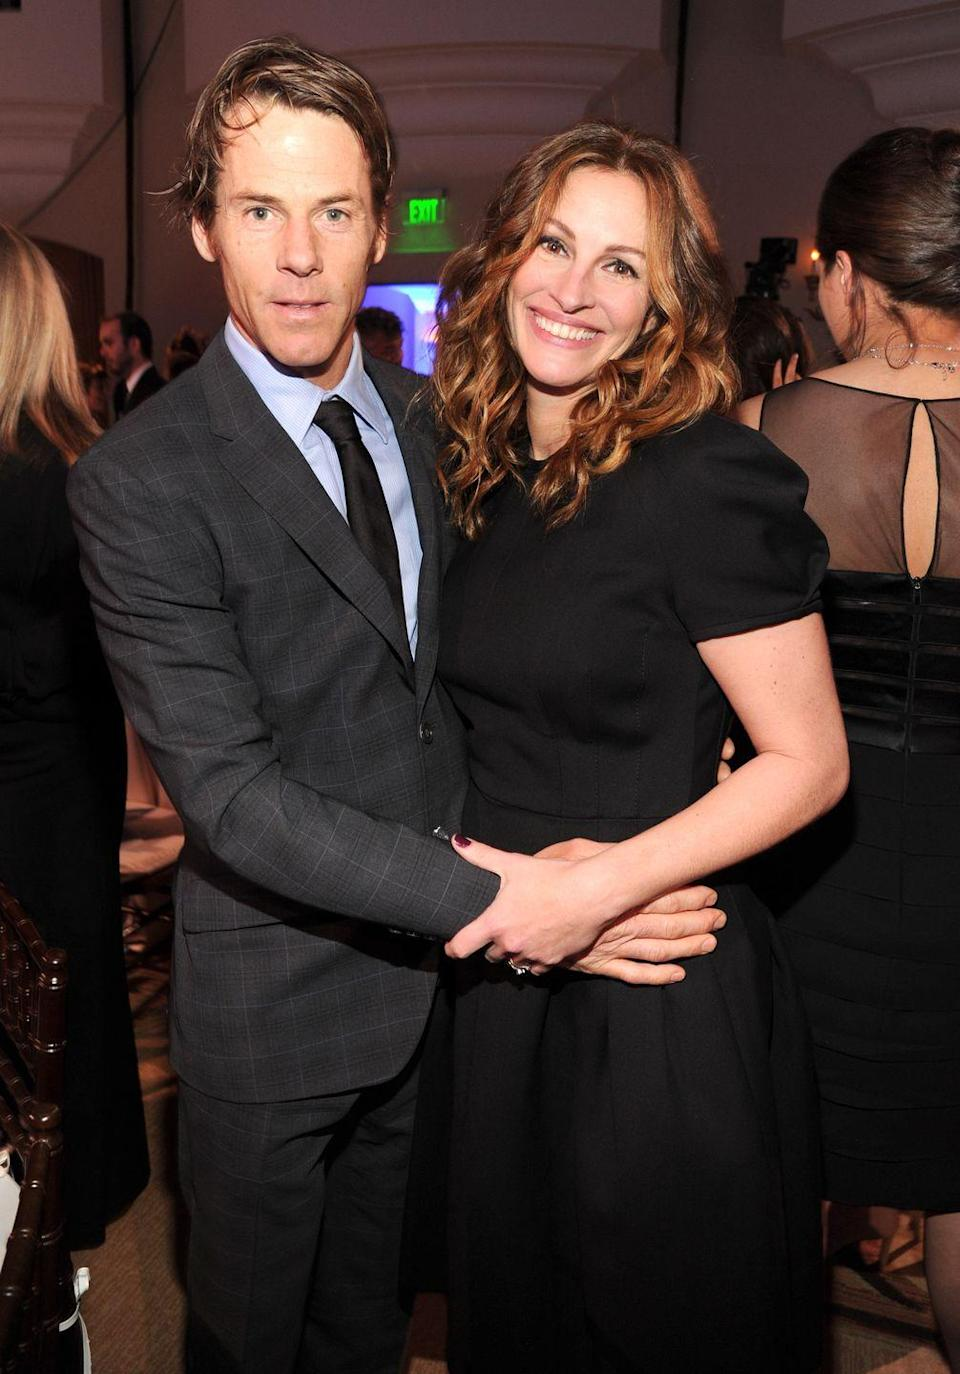 """<p>Roberts and Mode married in 2002. They have three children together<a href=""""https://www.elle.com/uk/life-and-culture/a37045192/julia-roberts-children-husband/"""" rel=""""nofollow noopener"""" target=""""_blank"""" data-ylk=""""slk:with their daughter Hazel recently making her red carpet debut,"""" class=""""link rapid-noclick-resp""""> with their daughter Hazel recently making her red carpet debut,</a> with her father, at Cannes Film Festival.</p>"""